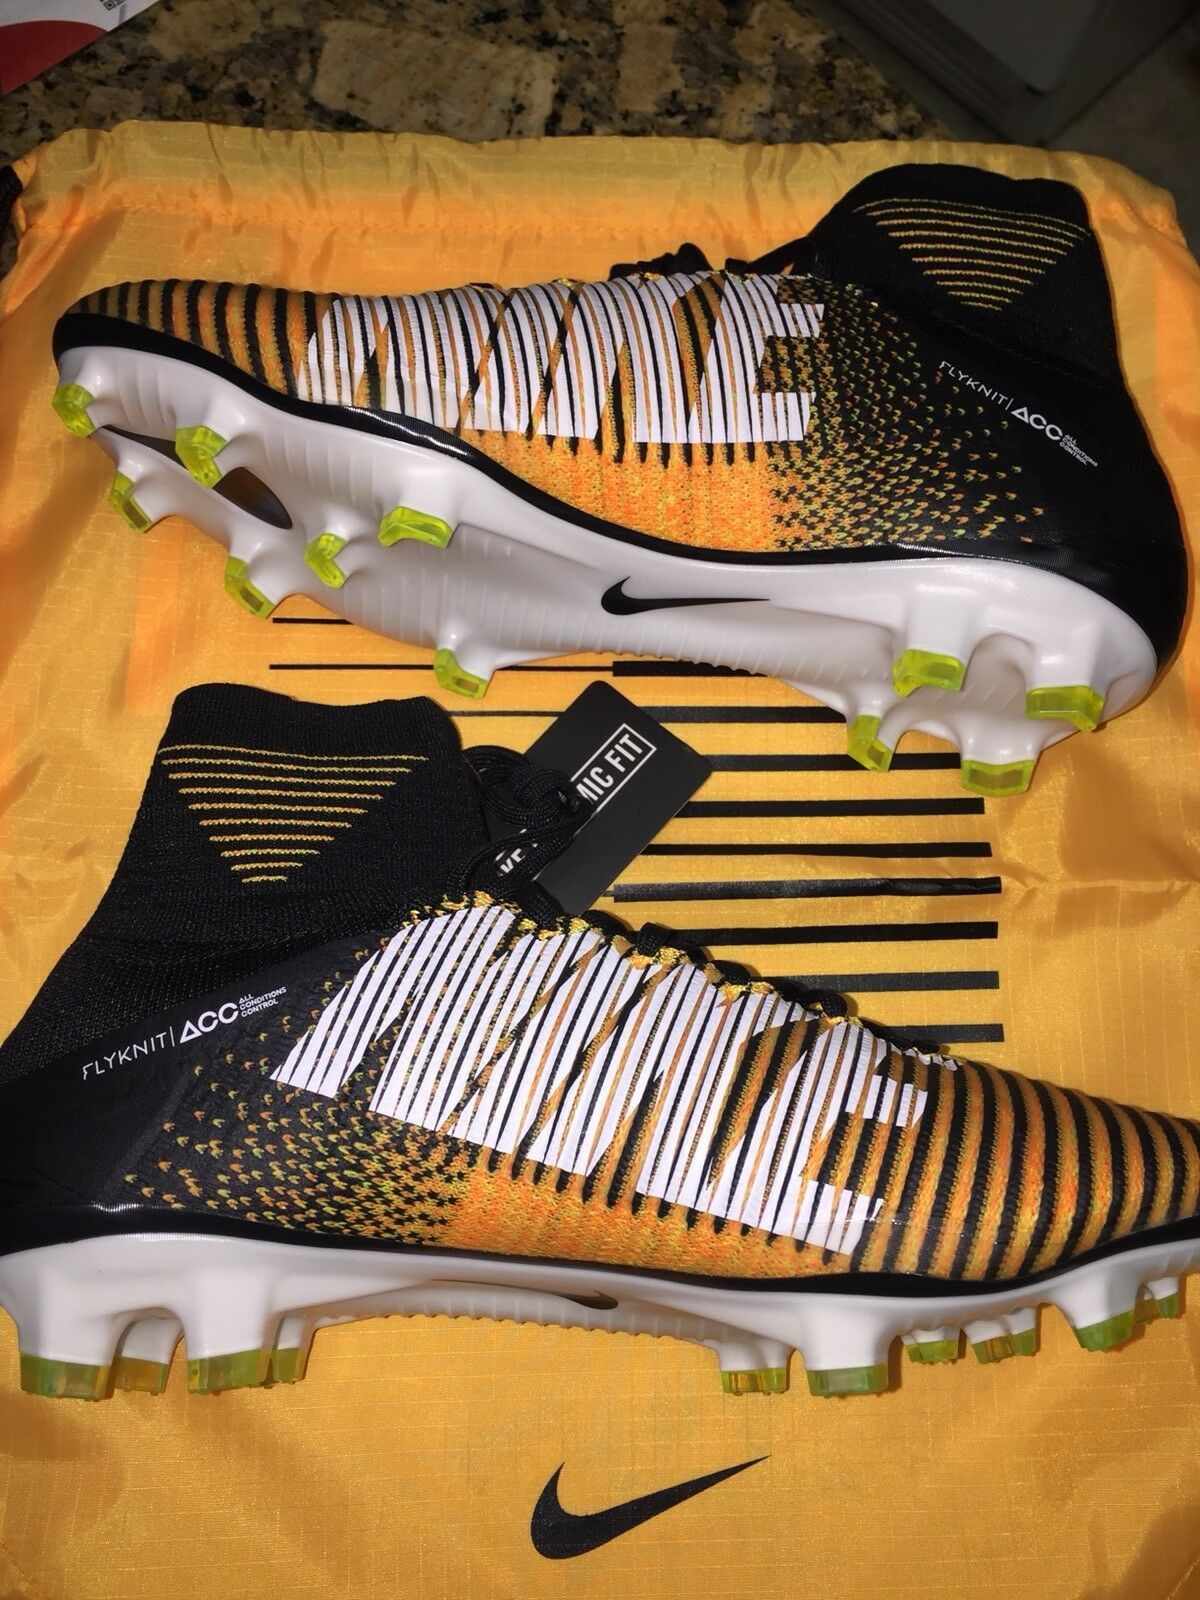 Nike Mercurial Superfly V DF FG,  Orange And Black SIZE 9.5 New W/out Box 300